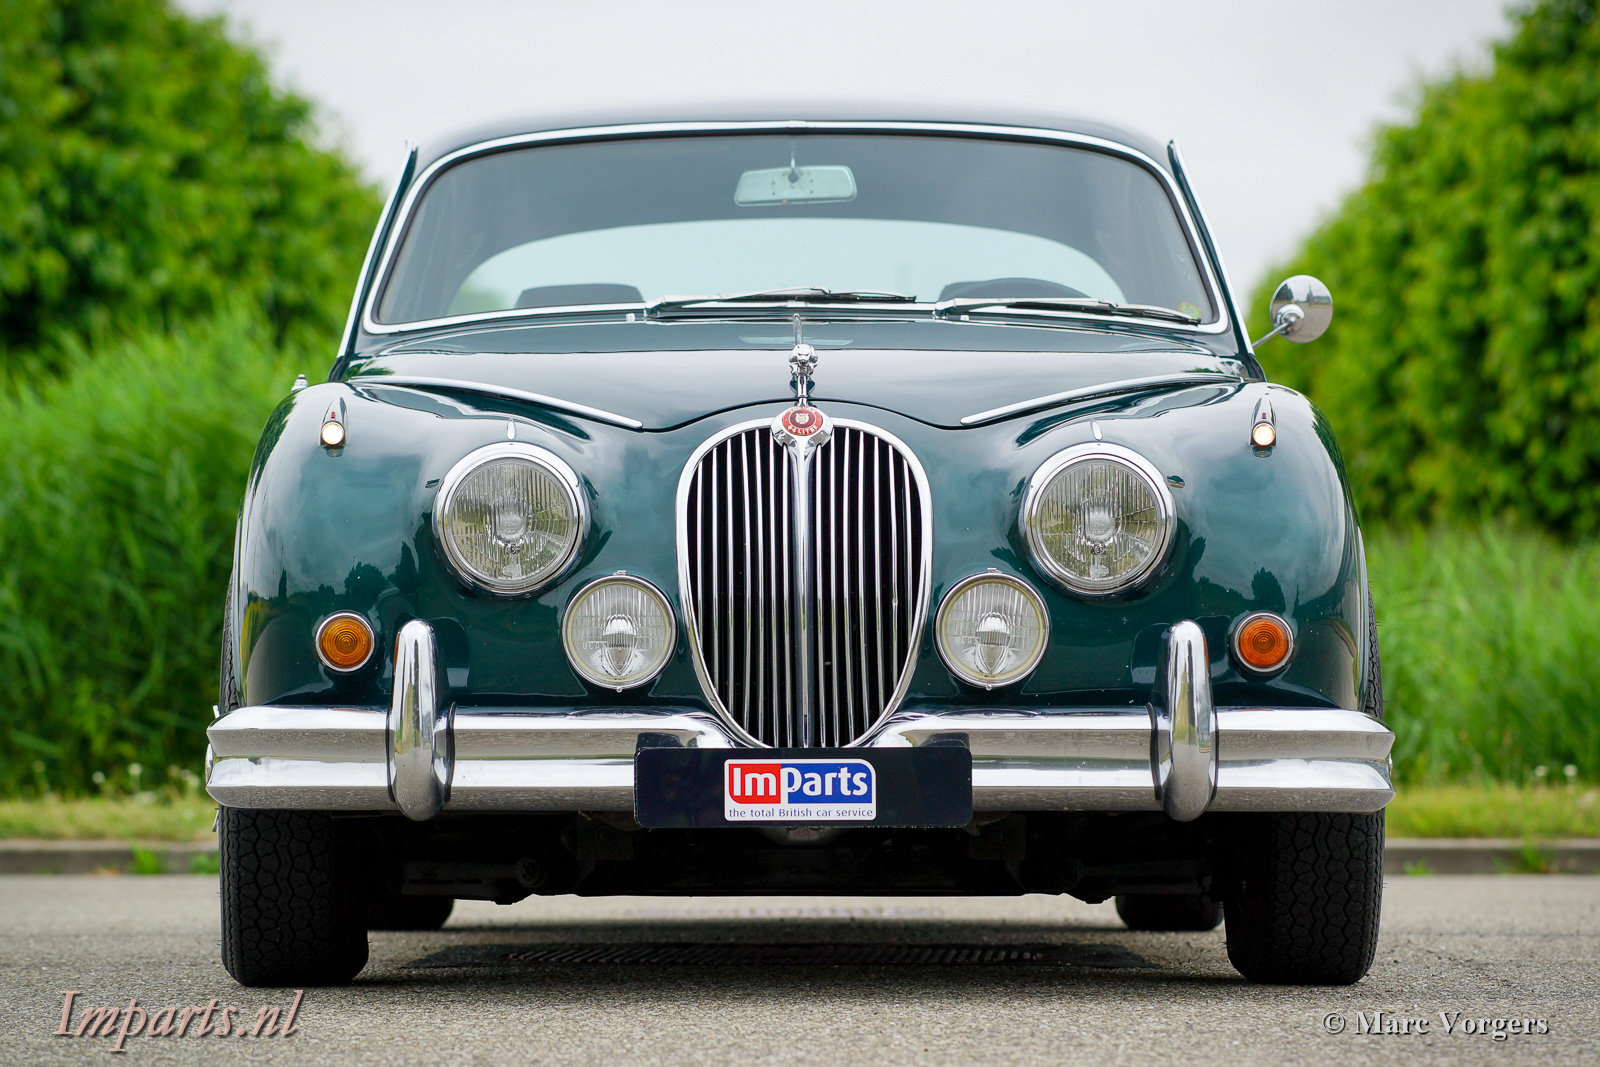 1967 Excellent Jaguar Mk2 3.4 Overdrive LHD For Sale (picture 6 of 6)